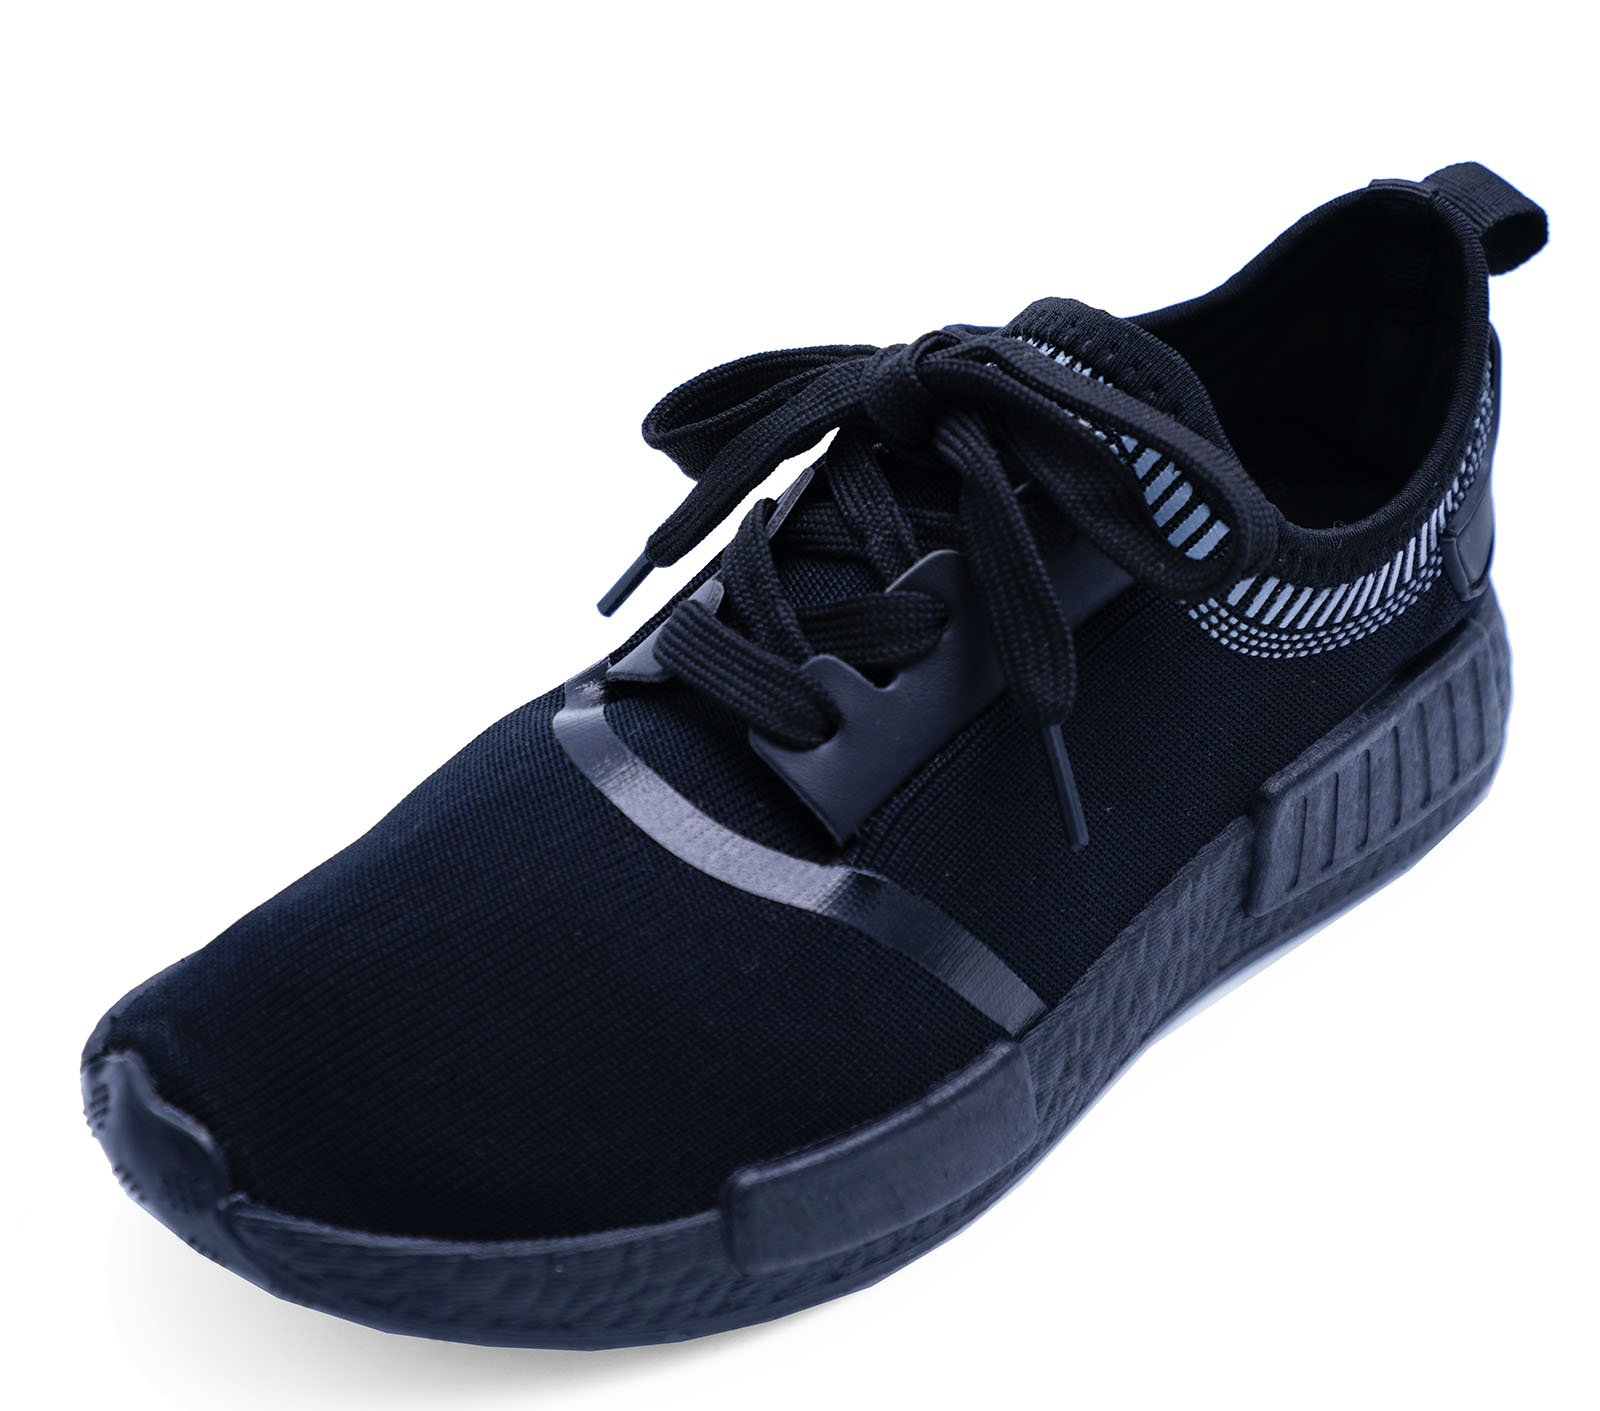 Unbranded Black Casual Shoes outlet countdown package 2014 new online w7l0Bxsw